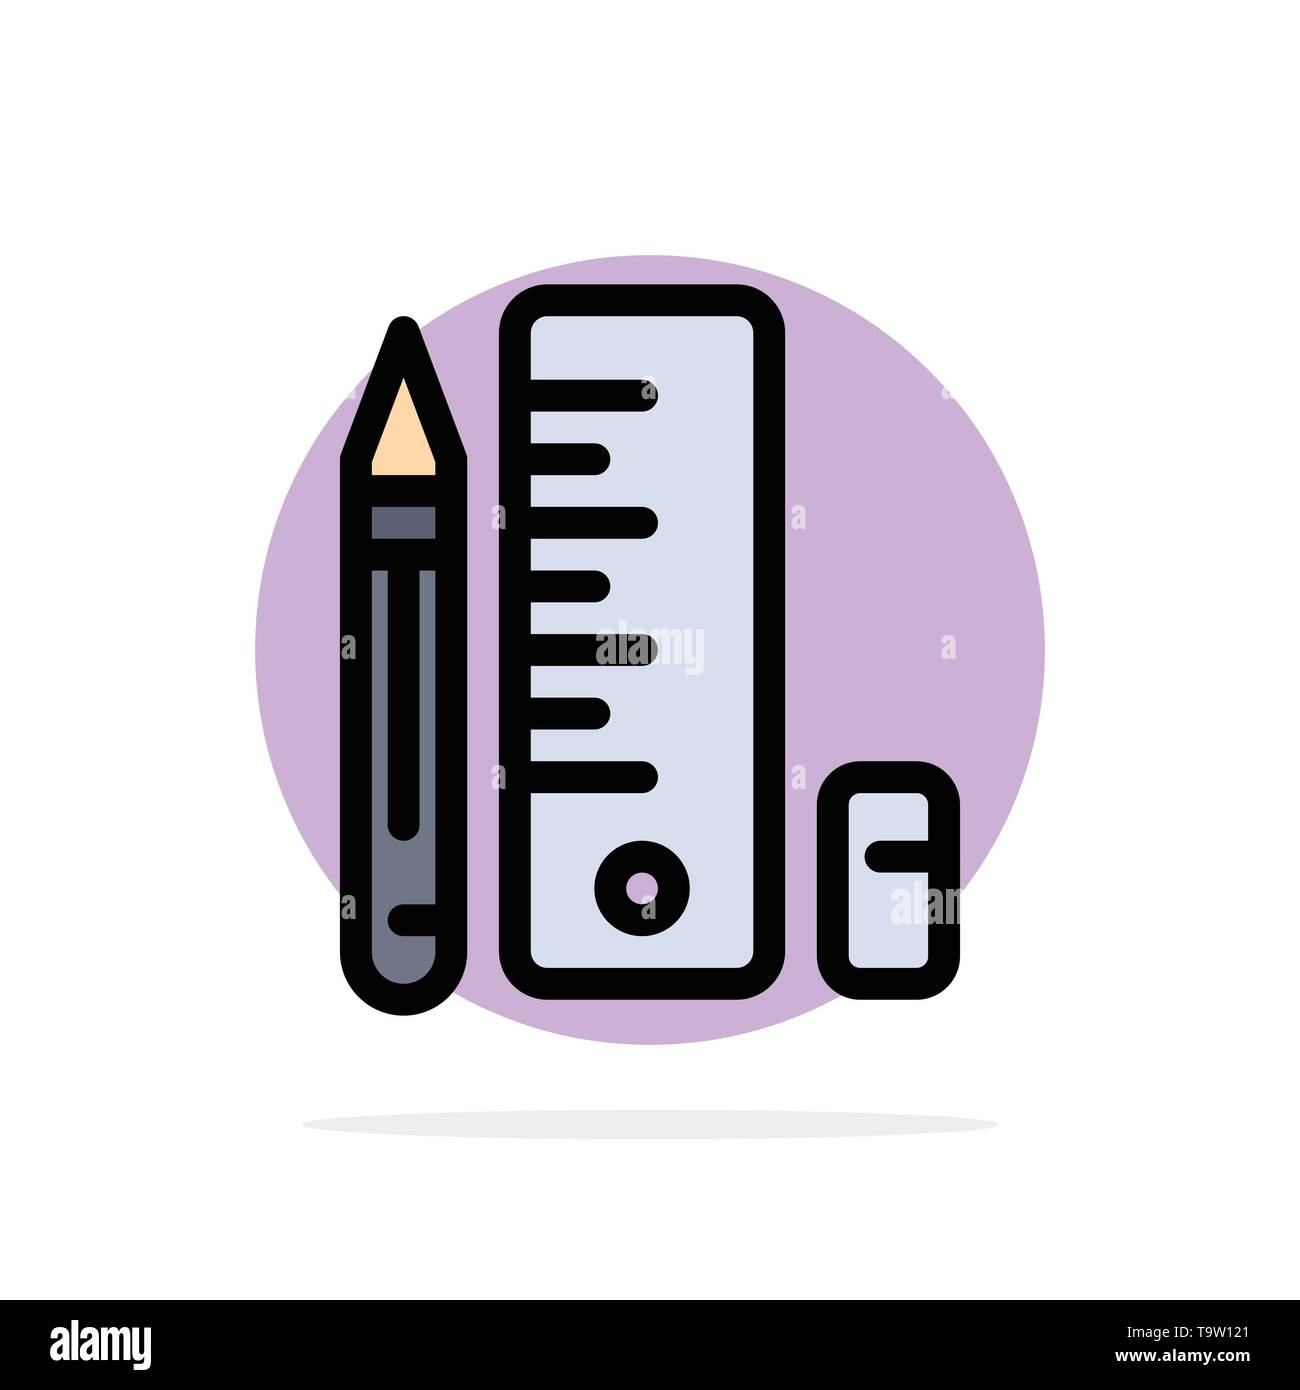 Education, Pen, Pencil, Scale Abstract Circle Background Flat color Icon - Stock Image